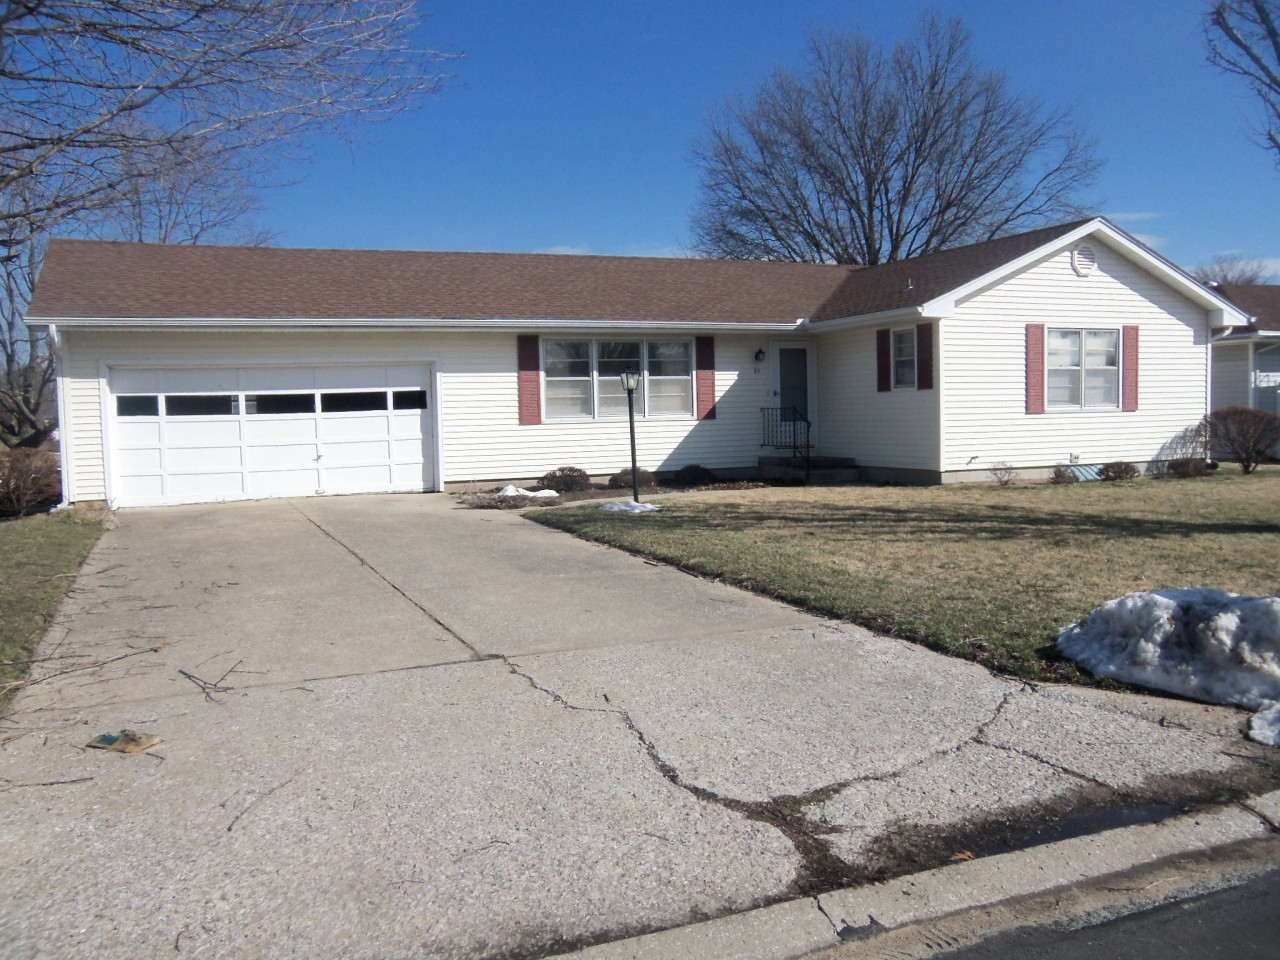 3 E Mission St, Marshall, MO 65340